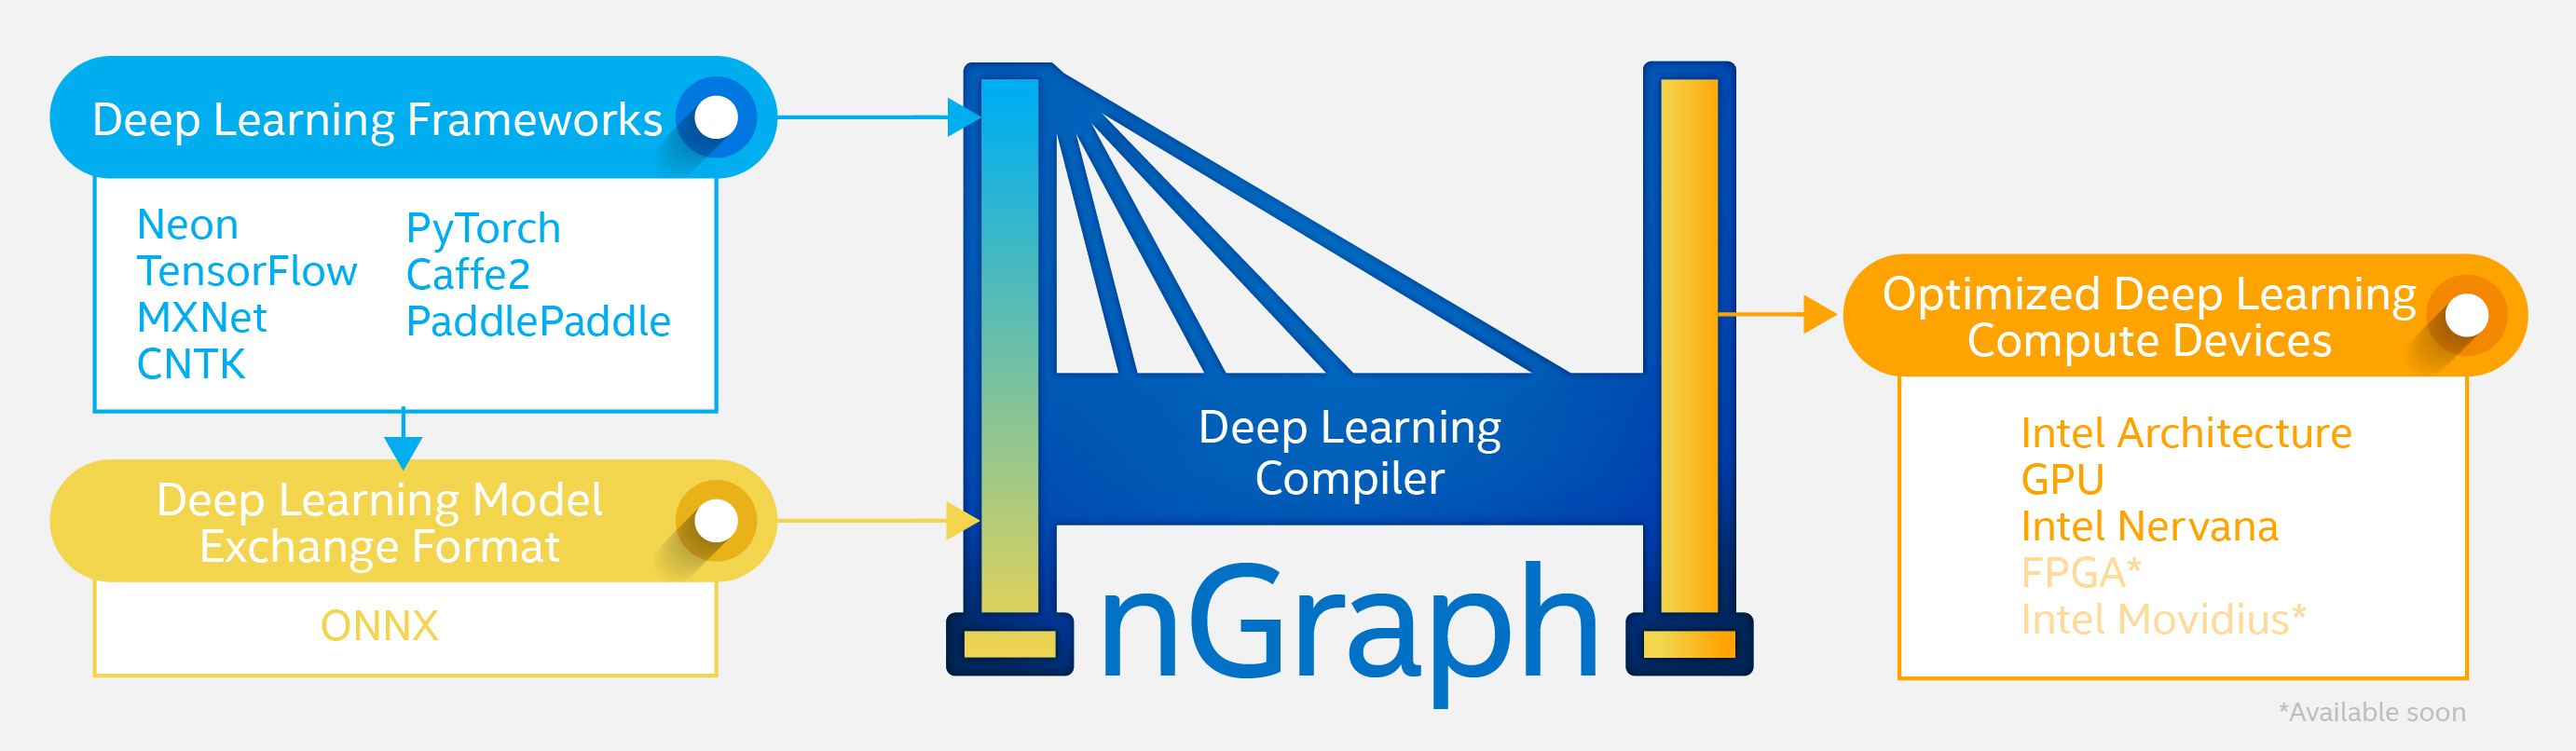 Intel Open Sources nGraph, Giving AI Developers Freedom of